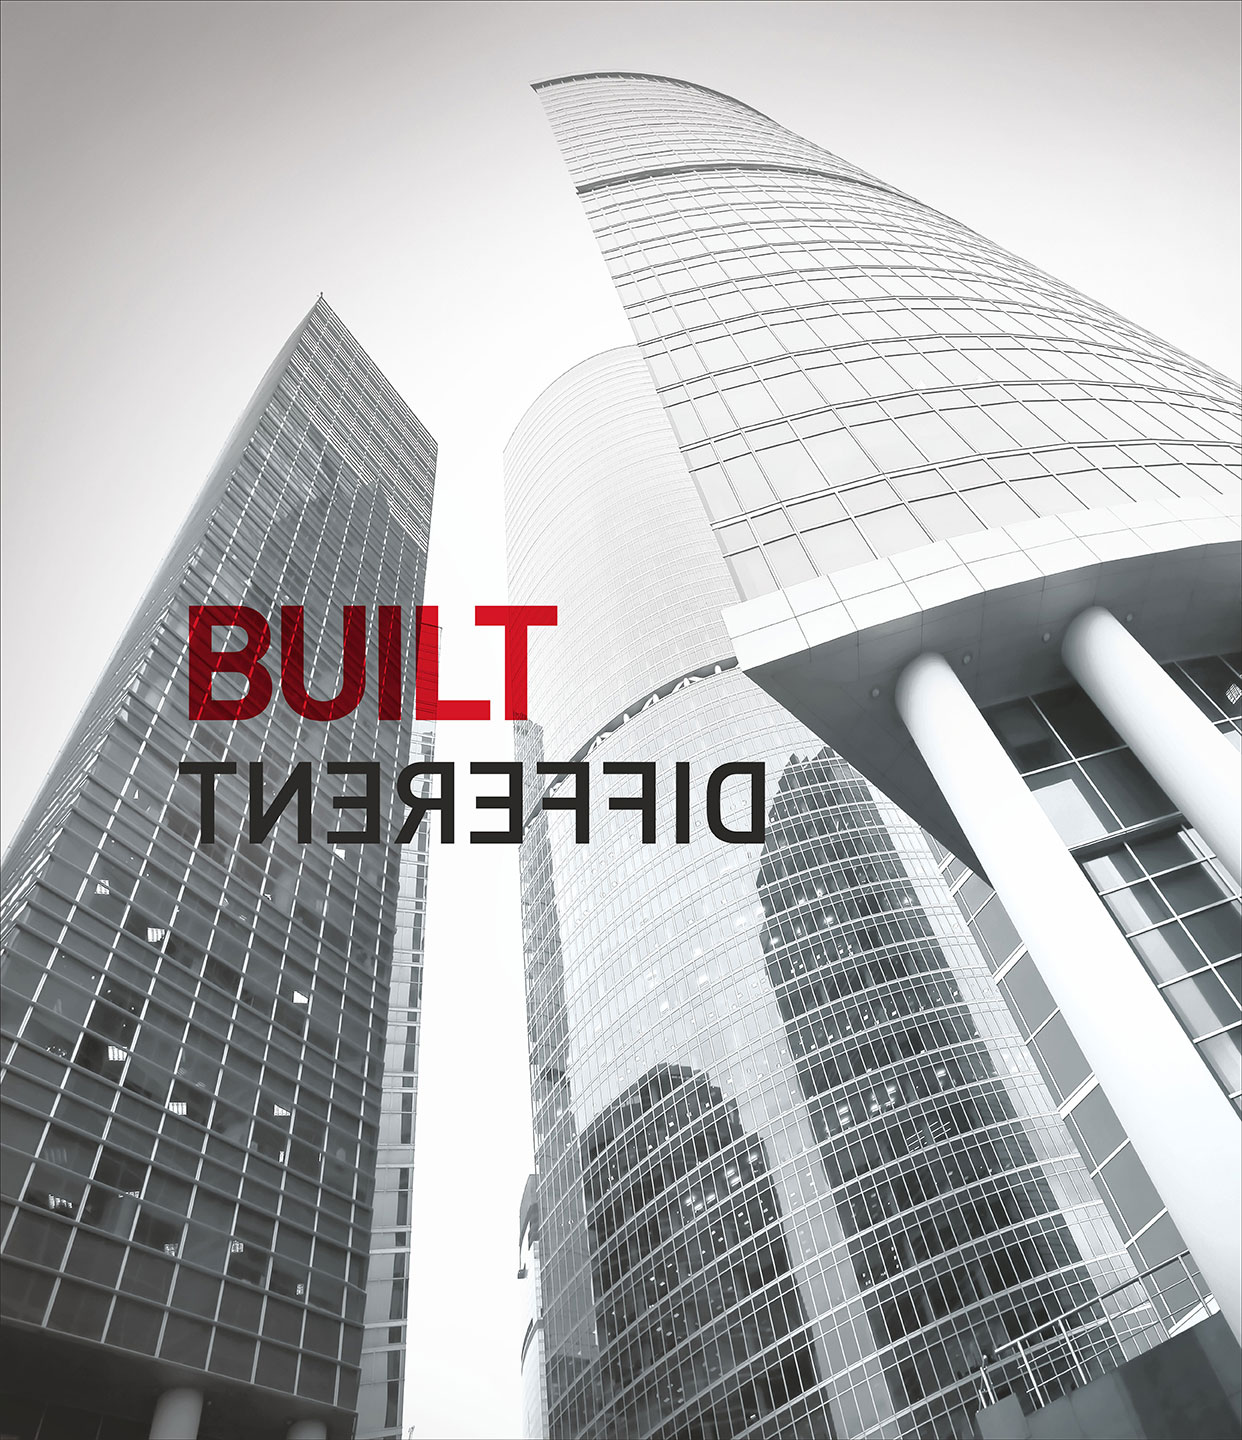 Best builders and developers in Mumbai and Navi Mumbai